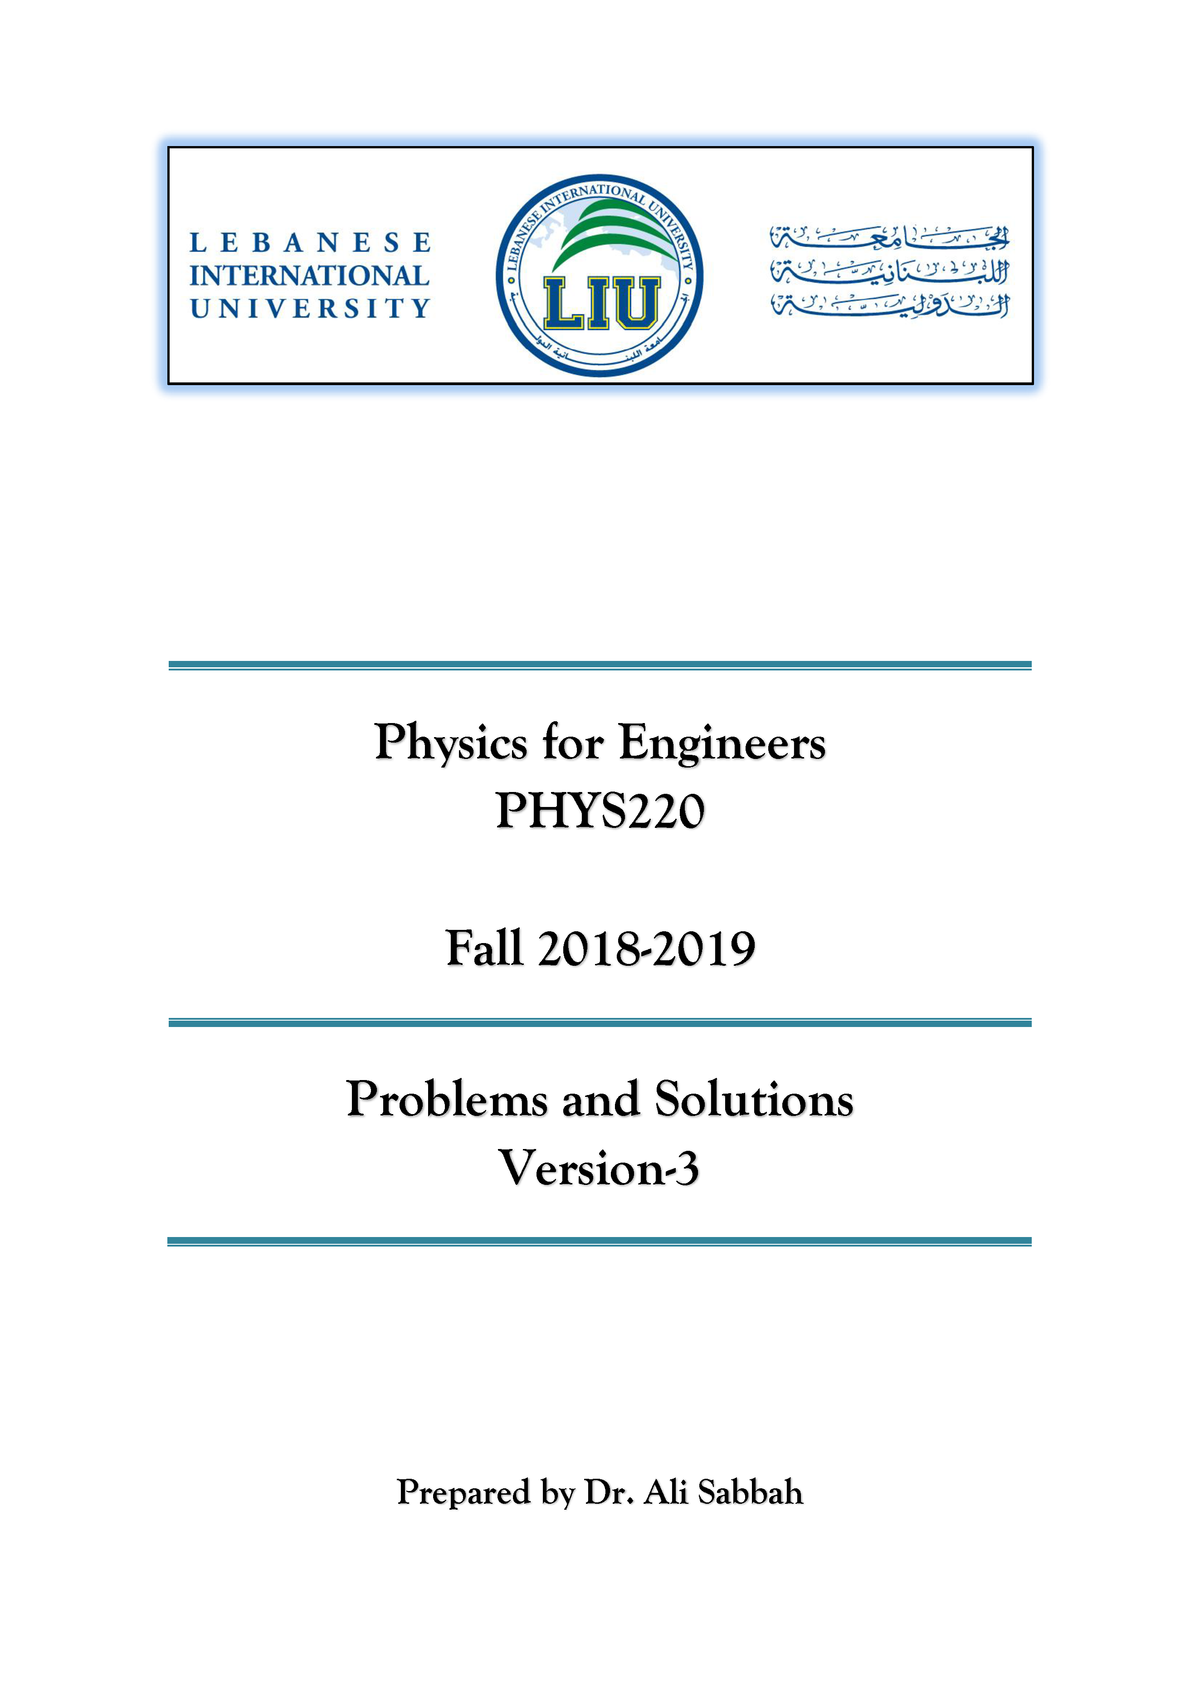 PHYS220 Booklet Problems and Solution version-3 Fall 2018-2019 - StuDocu